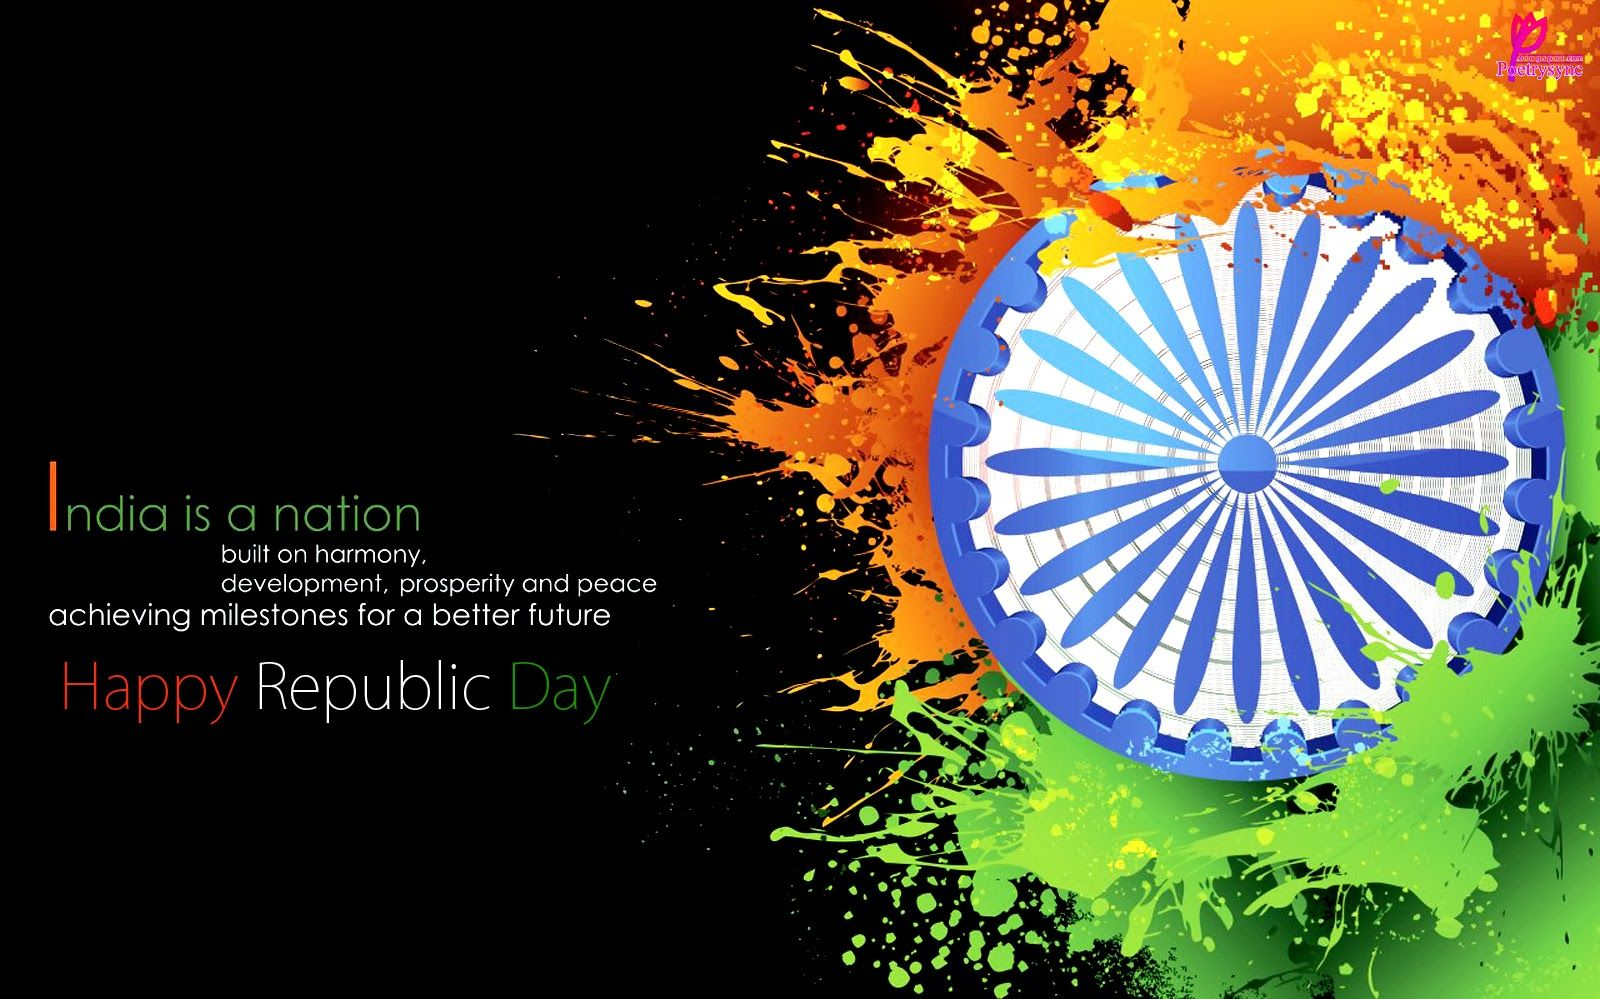 republic day of essay republic day essays for kids children  top ideas about republic day speech republic day top 25 ideas about republic day speech republic